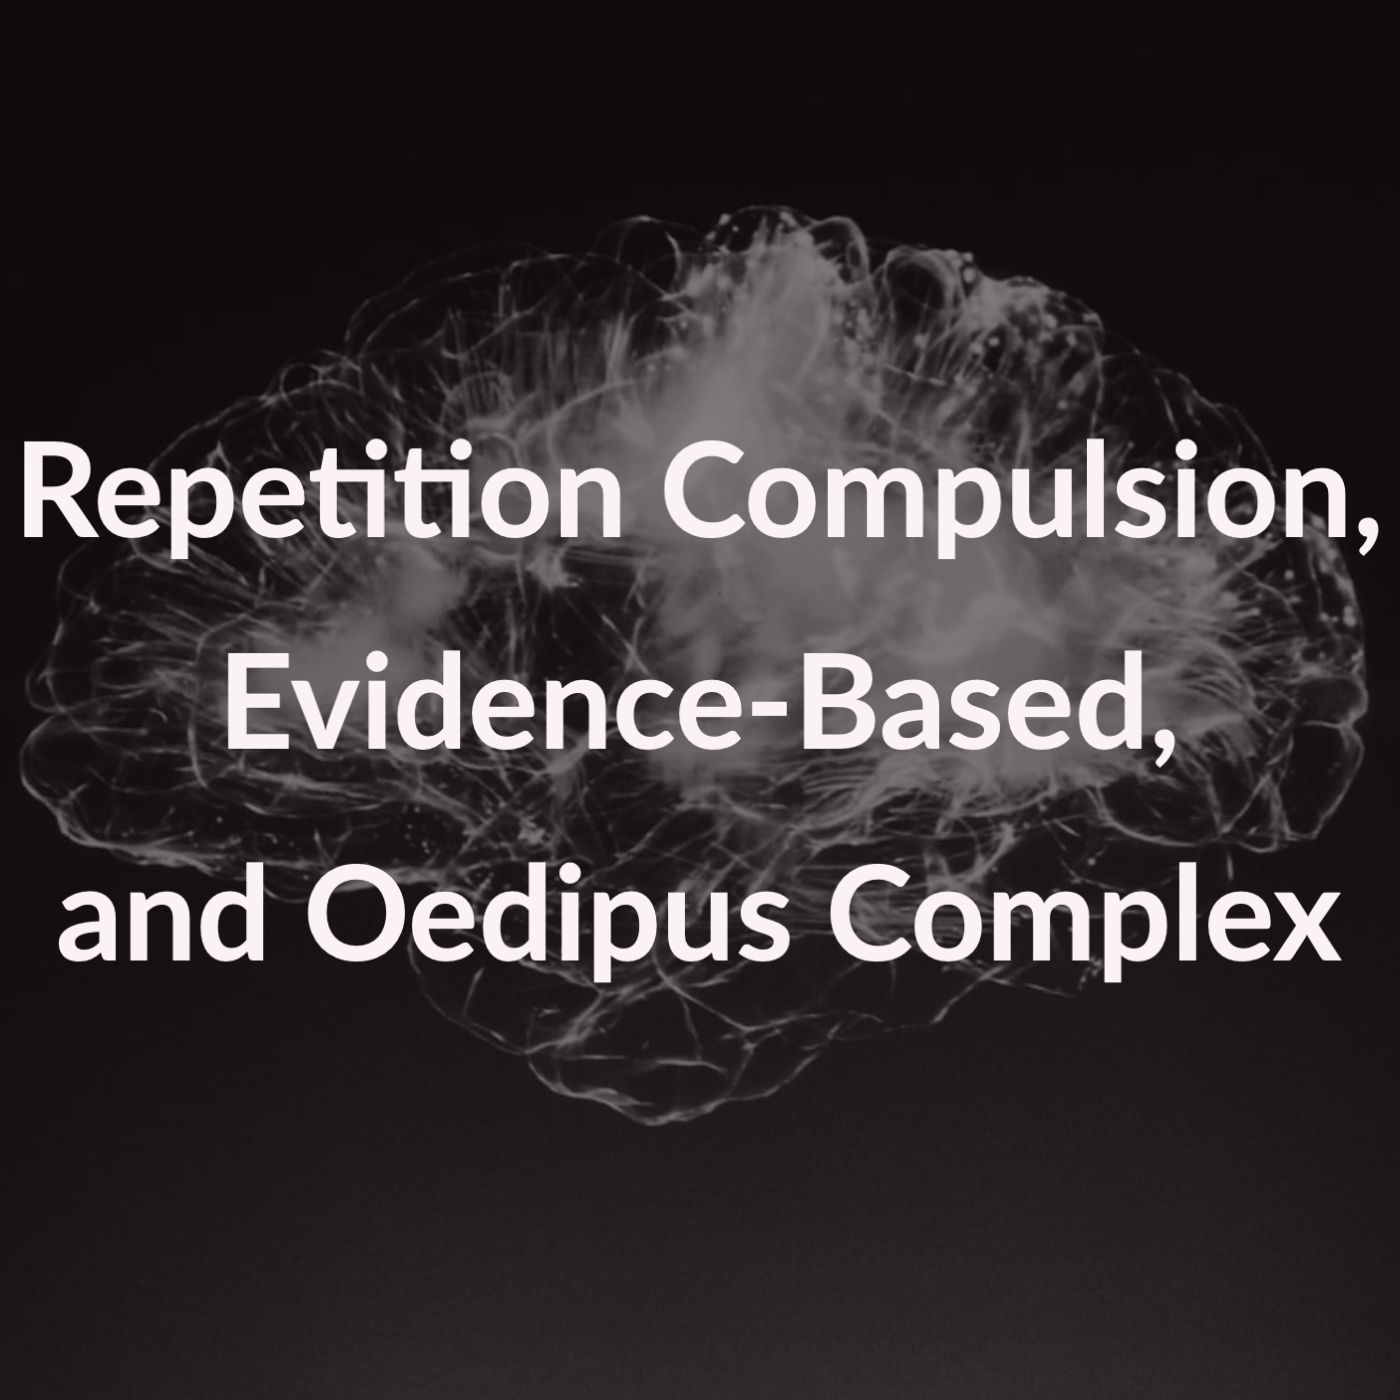 Repetition Compulsion, Evidence-Based, and Oedipus Complex